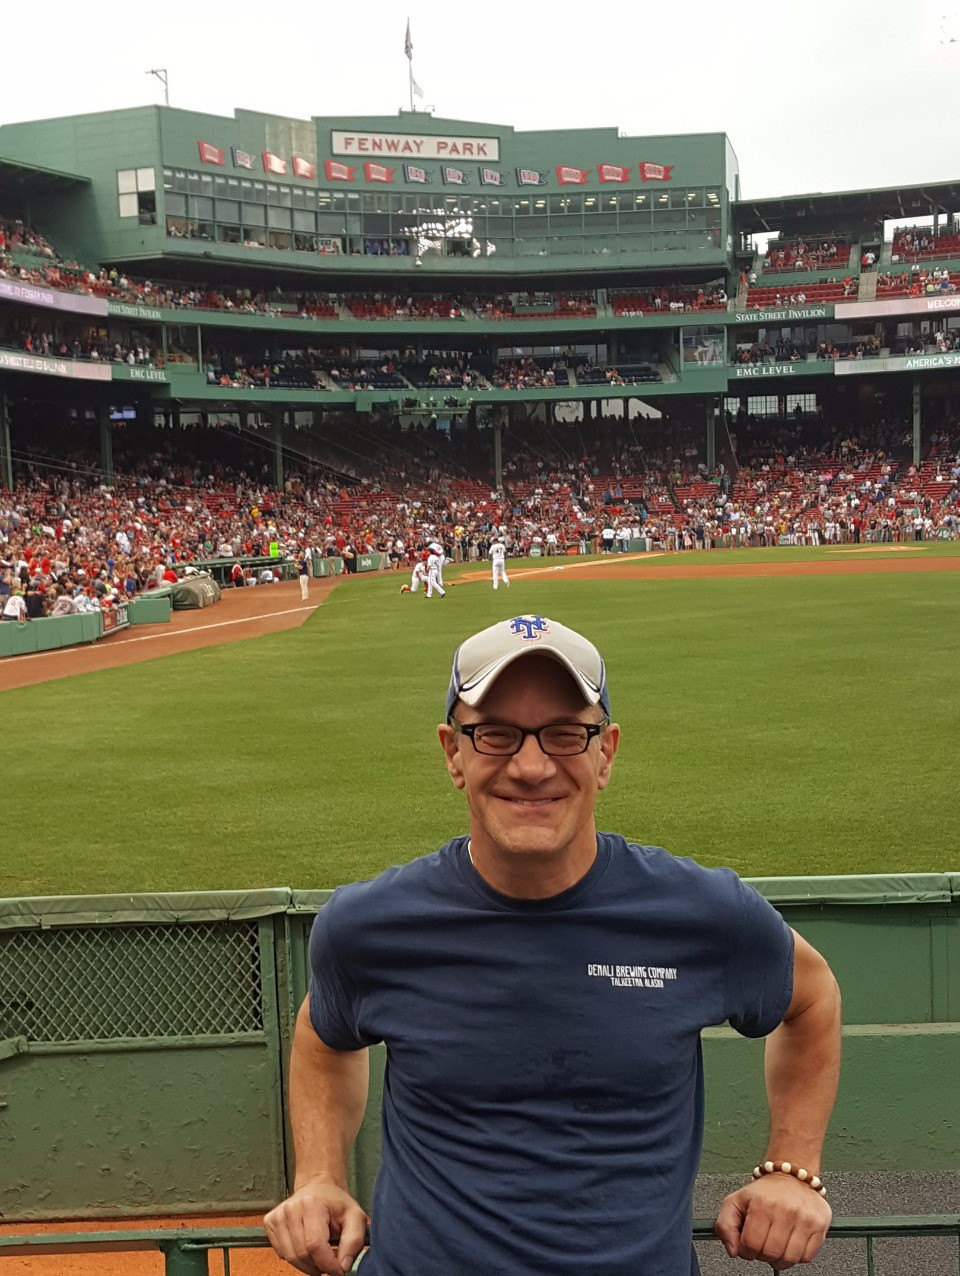 Fenway Park Review